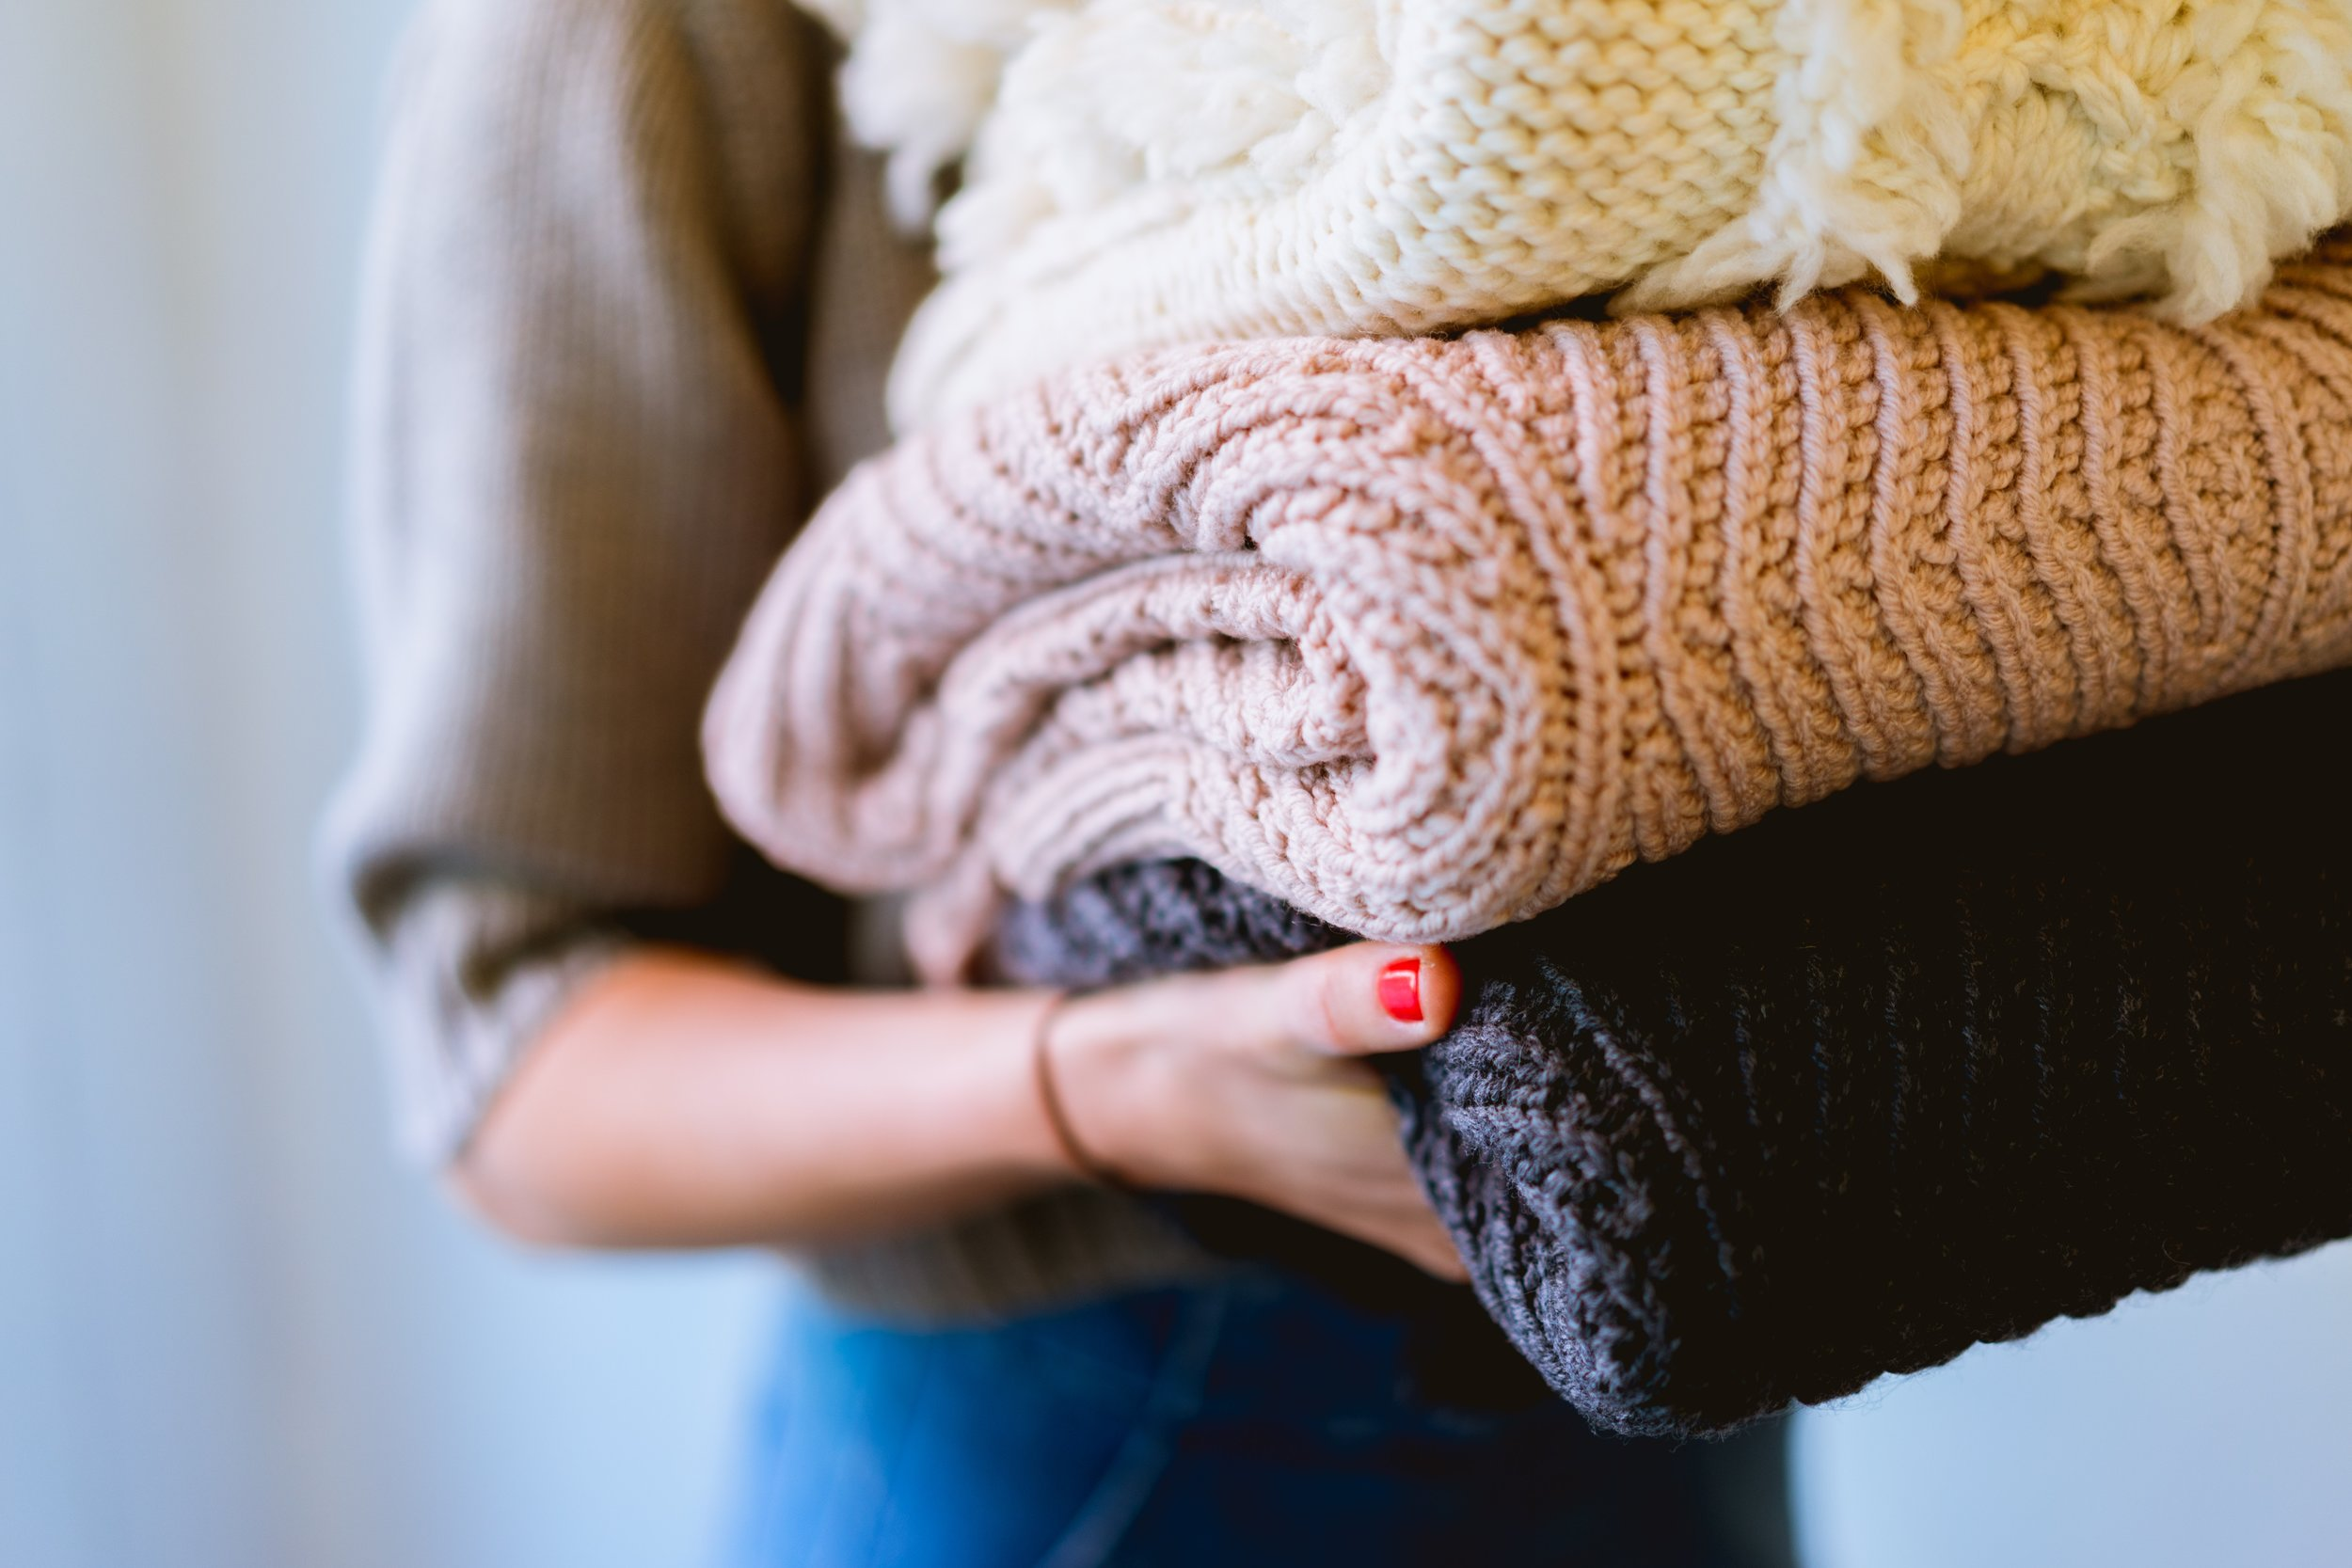 Time to bust out the BIG KNITS - sweaters, shawls, scarfs, cardigans, ect